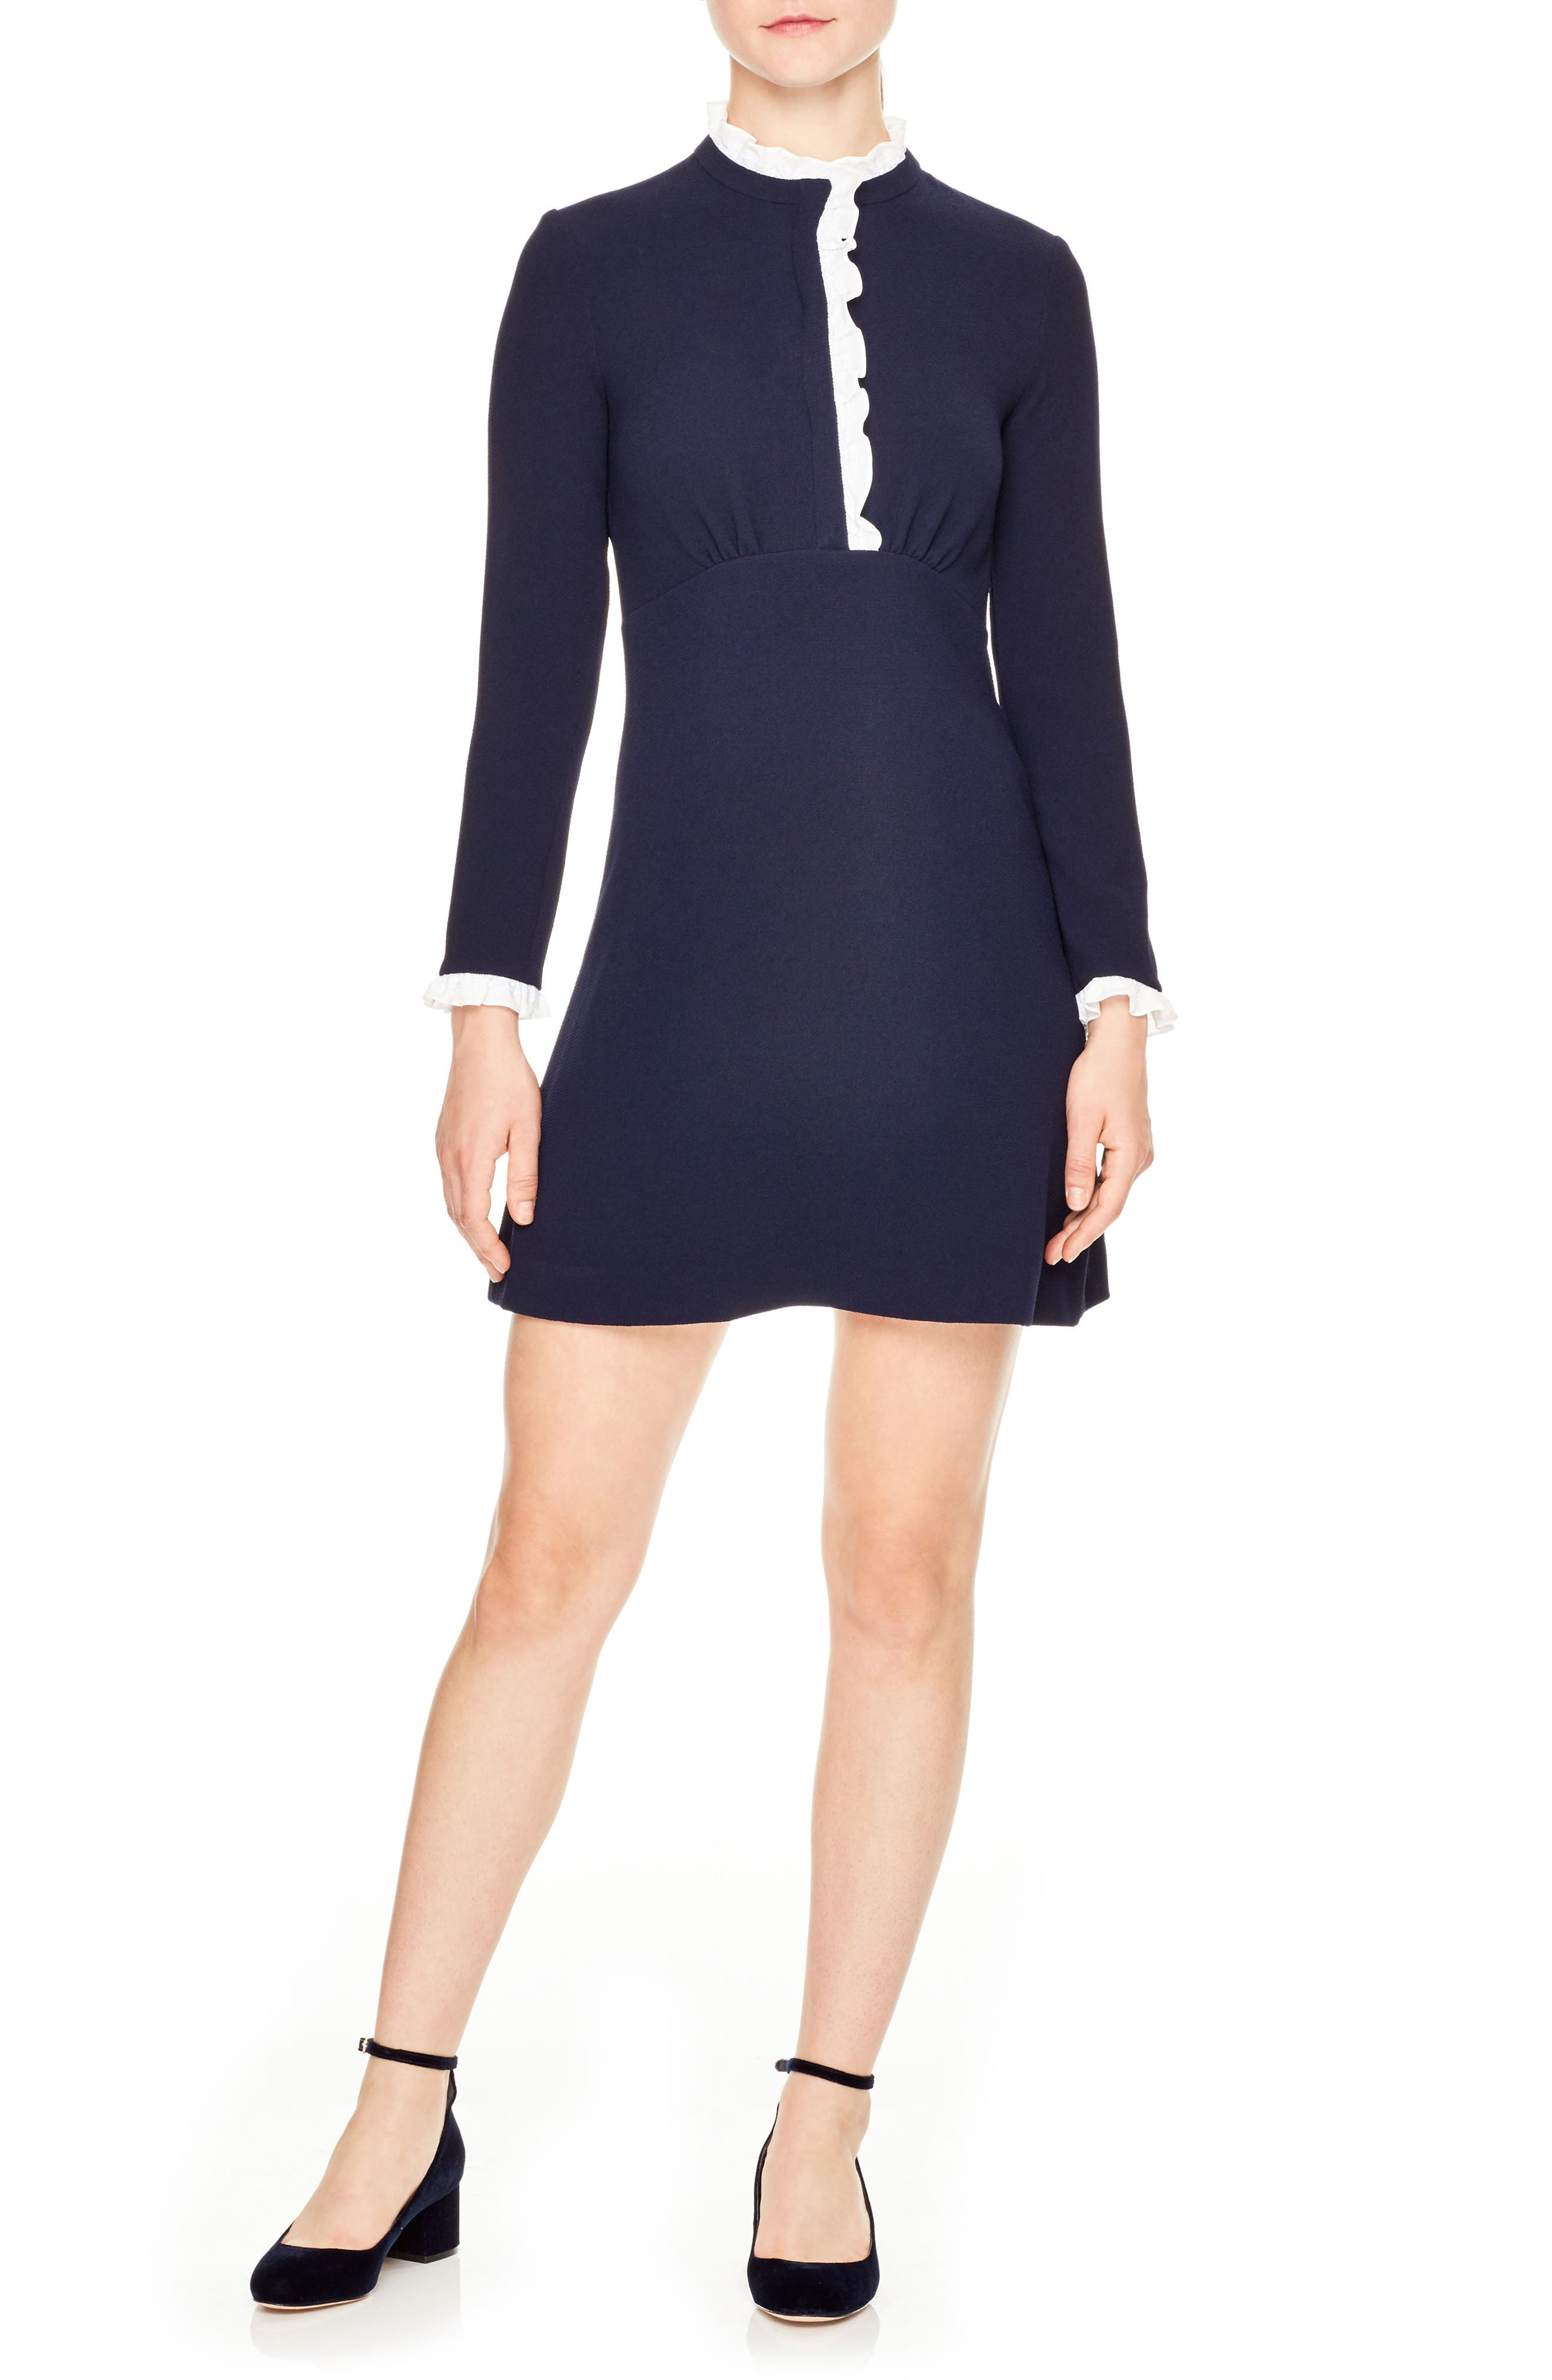 Natalia Long Sleeve Dress,                         Main,                         color, 401